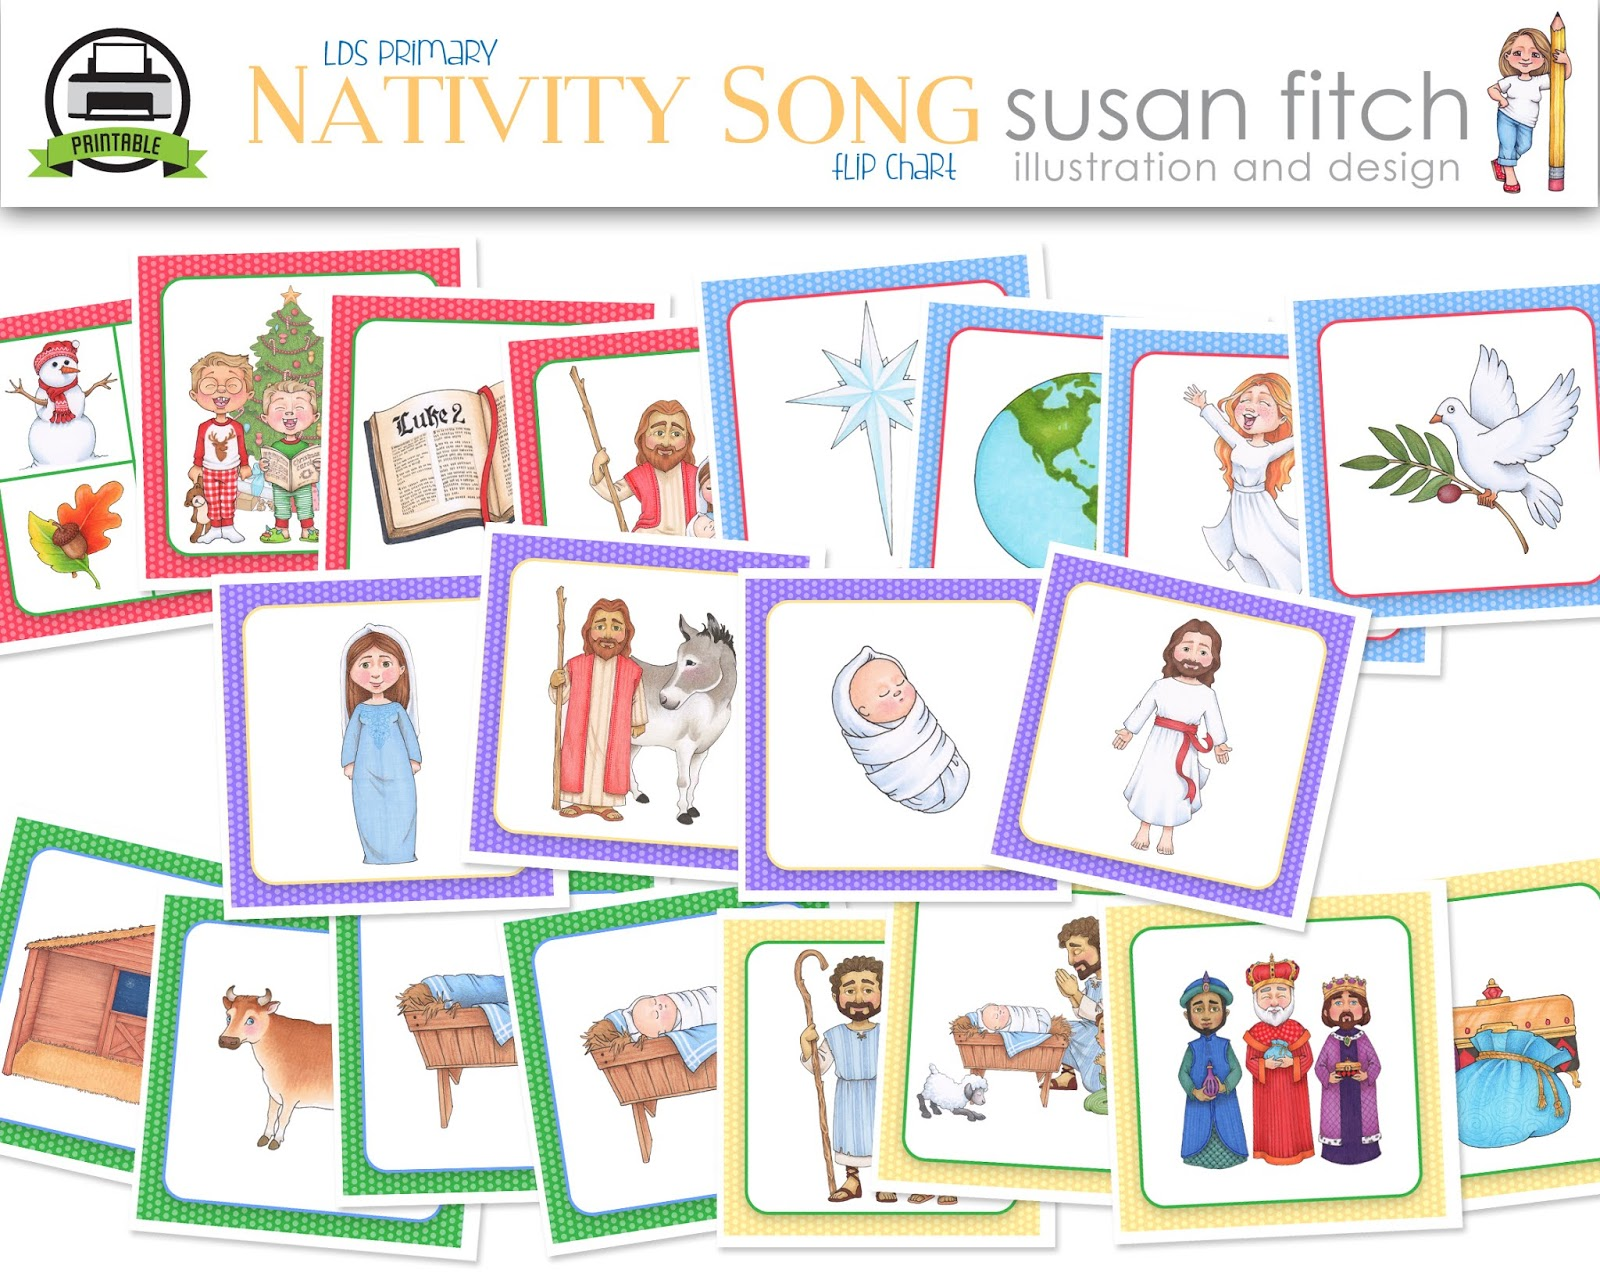 Susan fitch clipart opening song black and white download Camille\'s Primary Ideas: The Nativity Song with NEW Susan ... black and white download